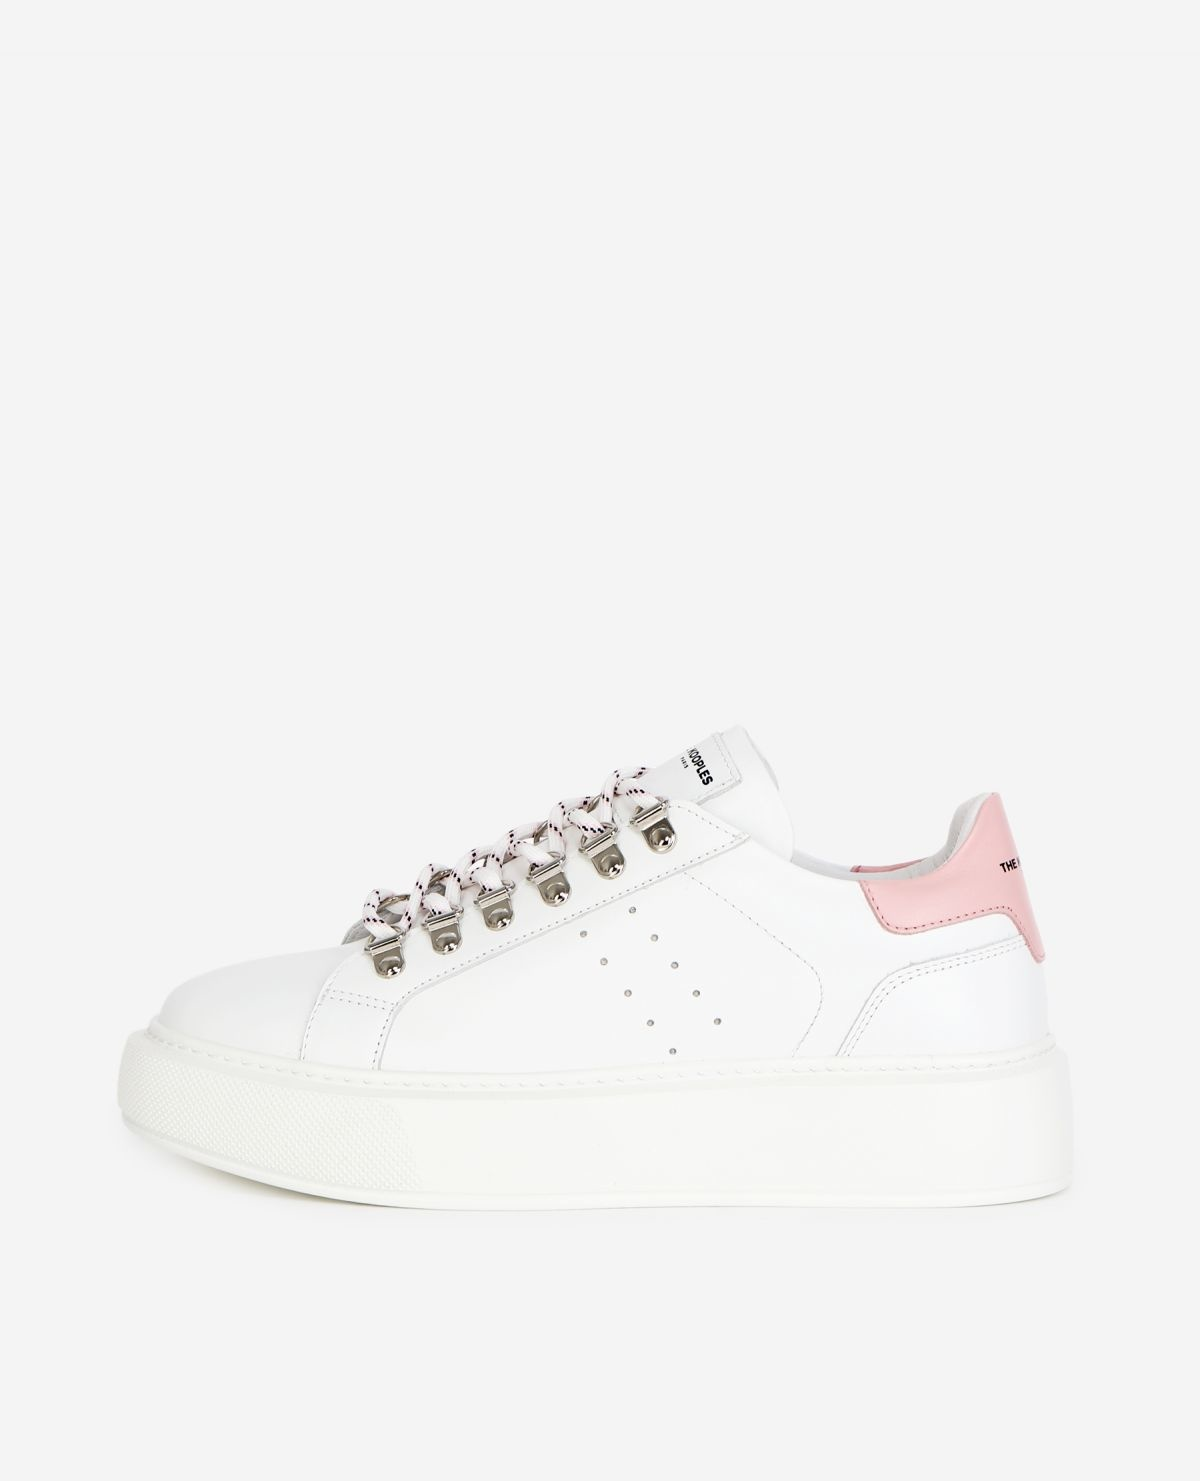 THE KOOPLES  baskets cuir blanches-1